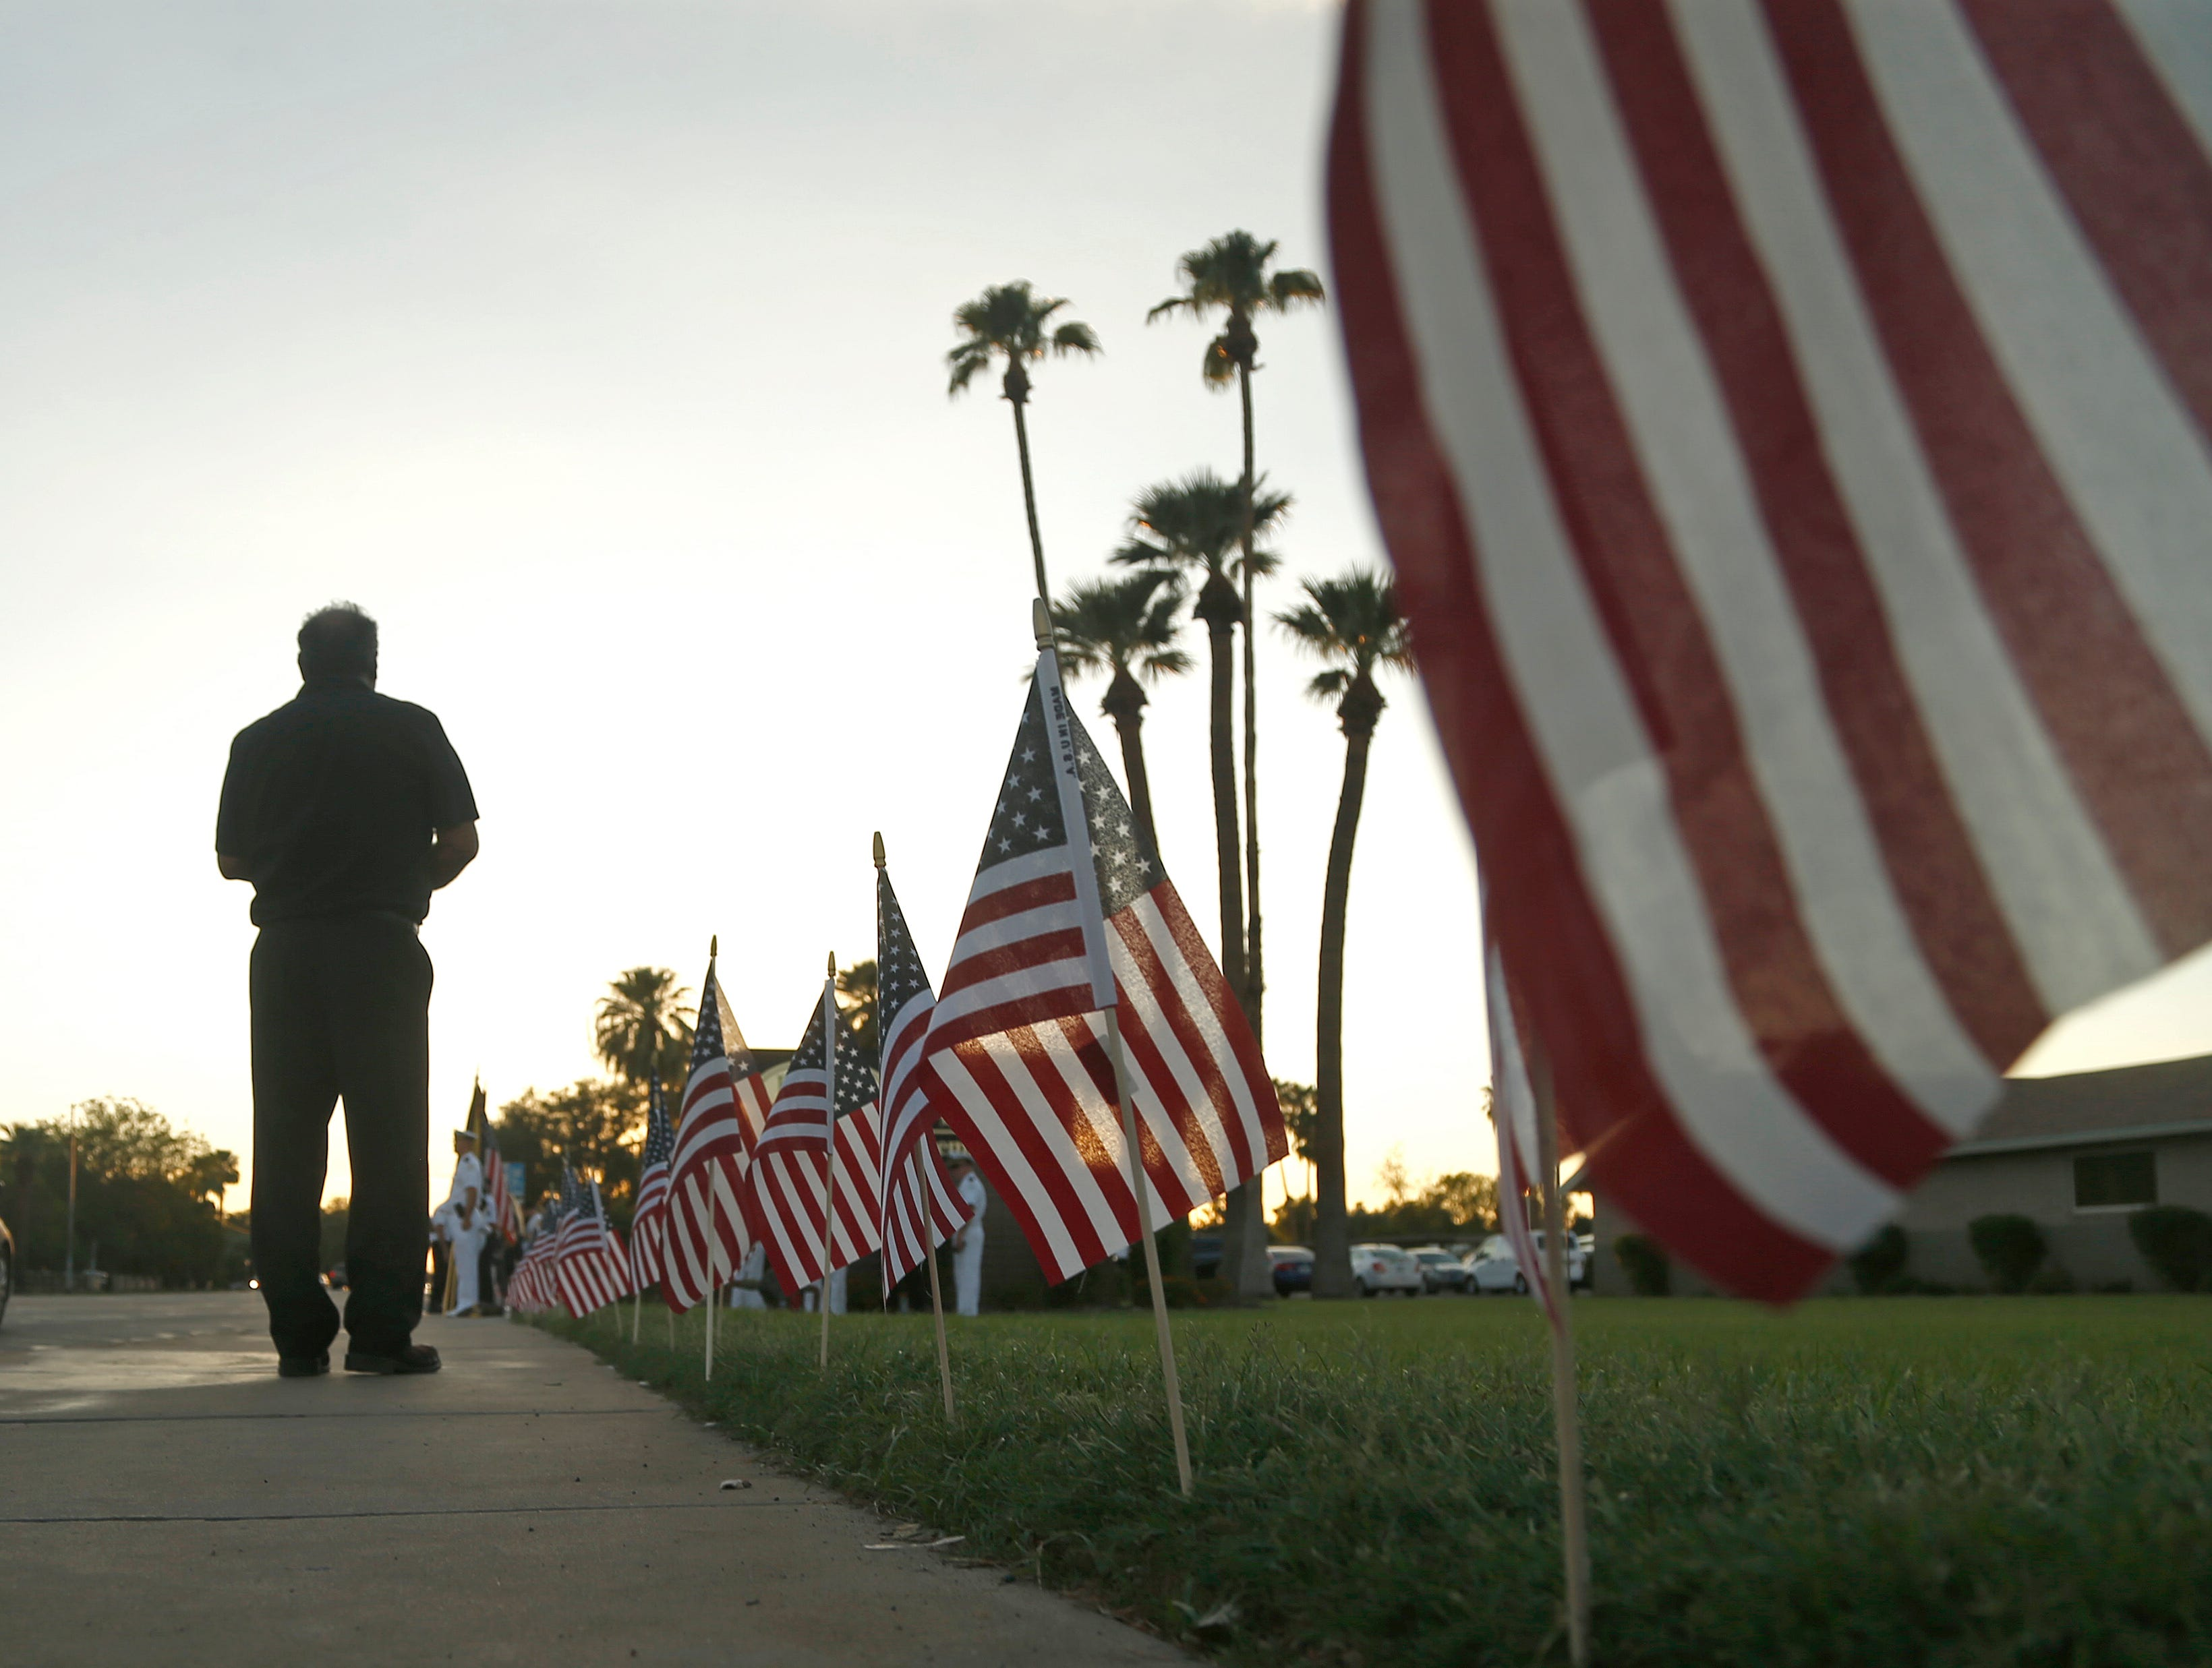 Flags line a memorial outside A.L. Moore-Grimshaw Mortuaries in Phoenix on Aug. 26, 2018.